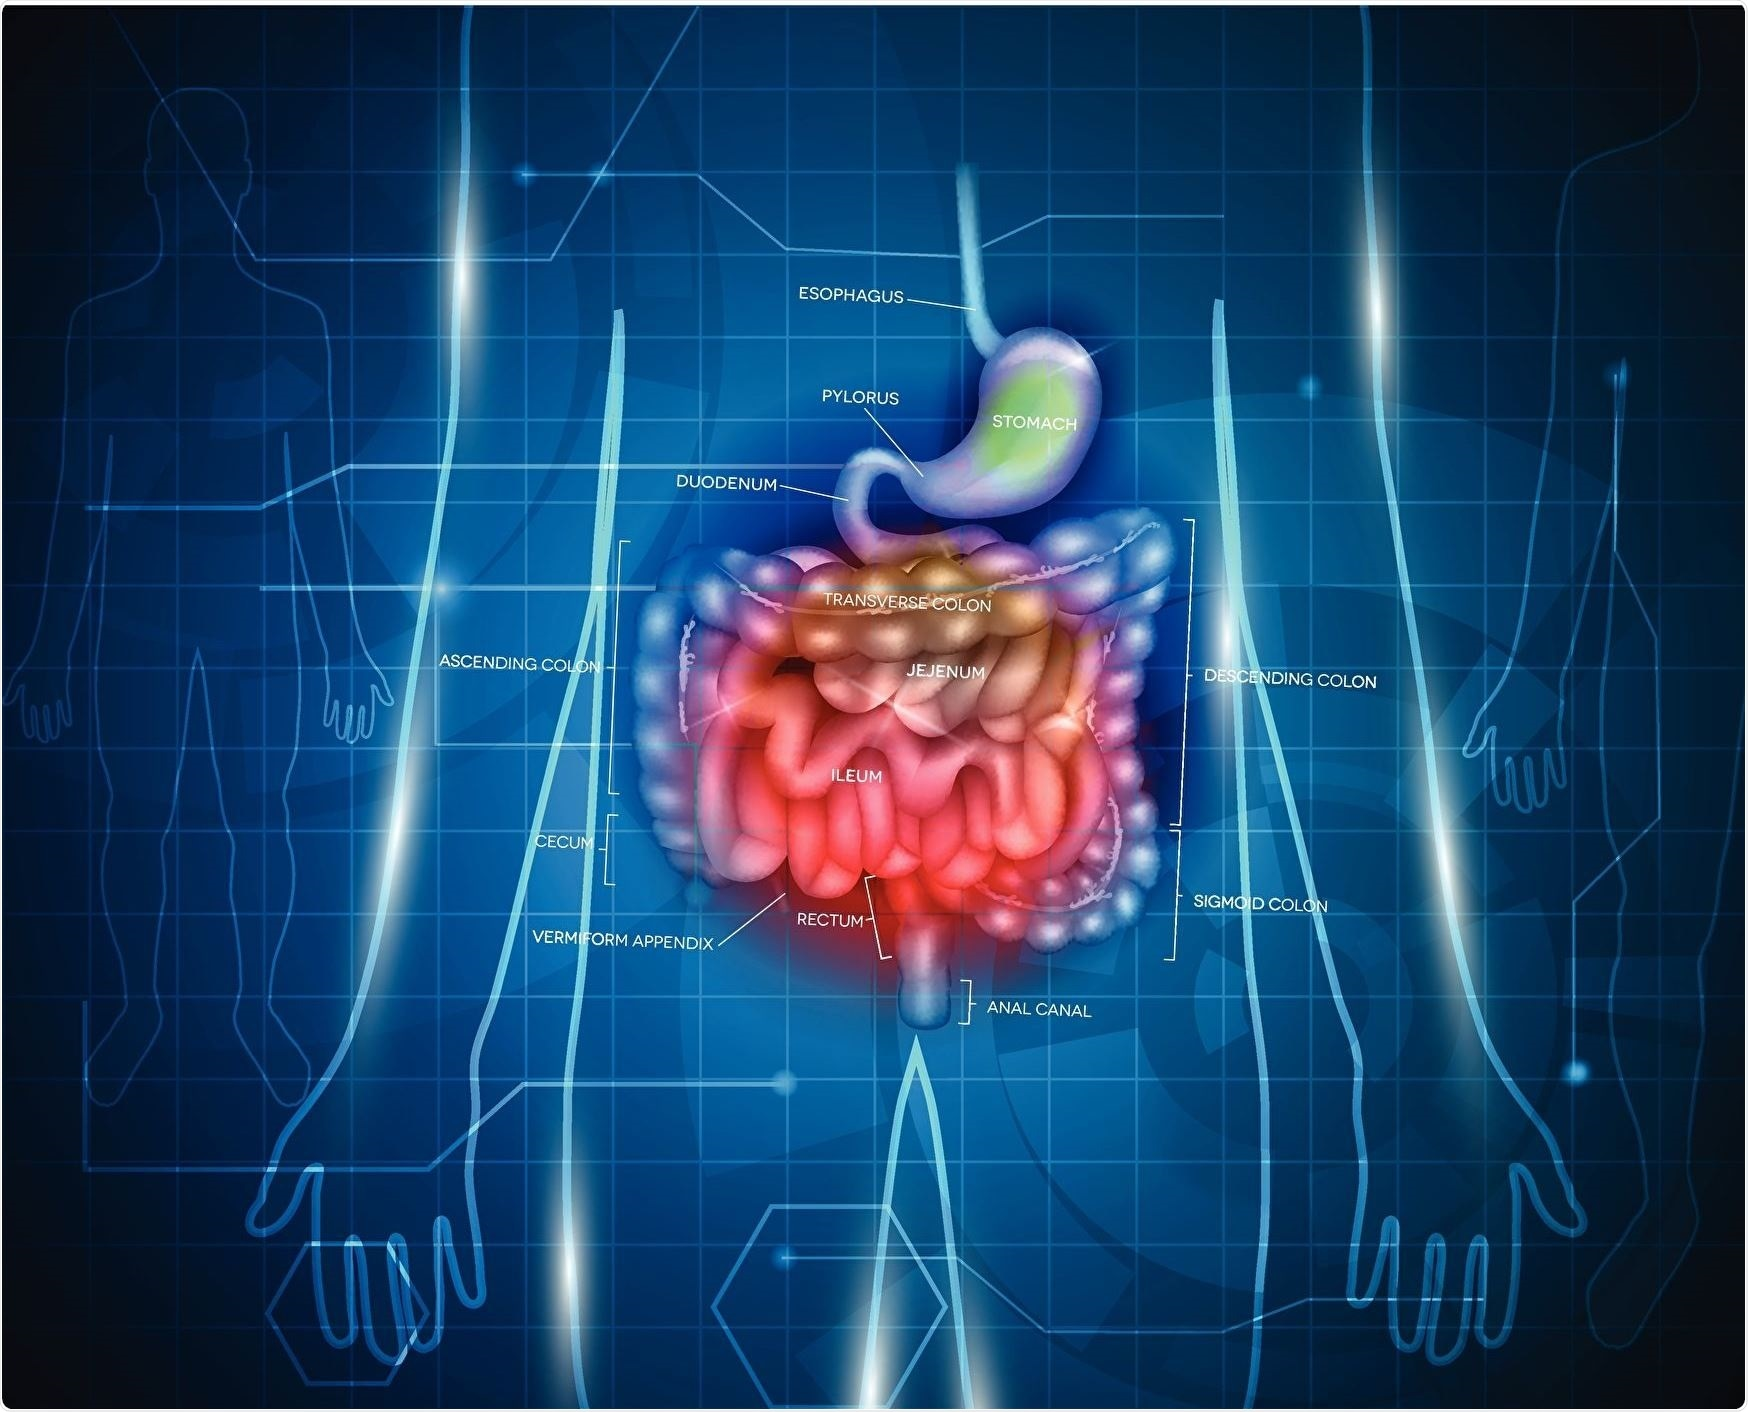 New imaging technique uses photonics for early diagnosis of bowel cancer